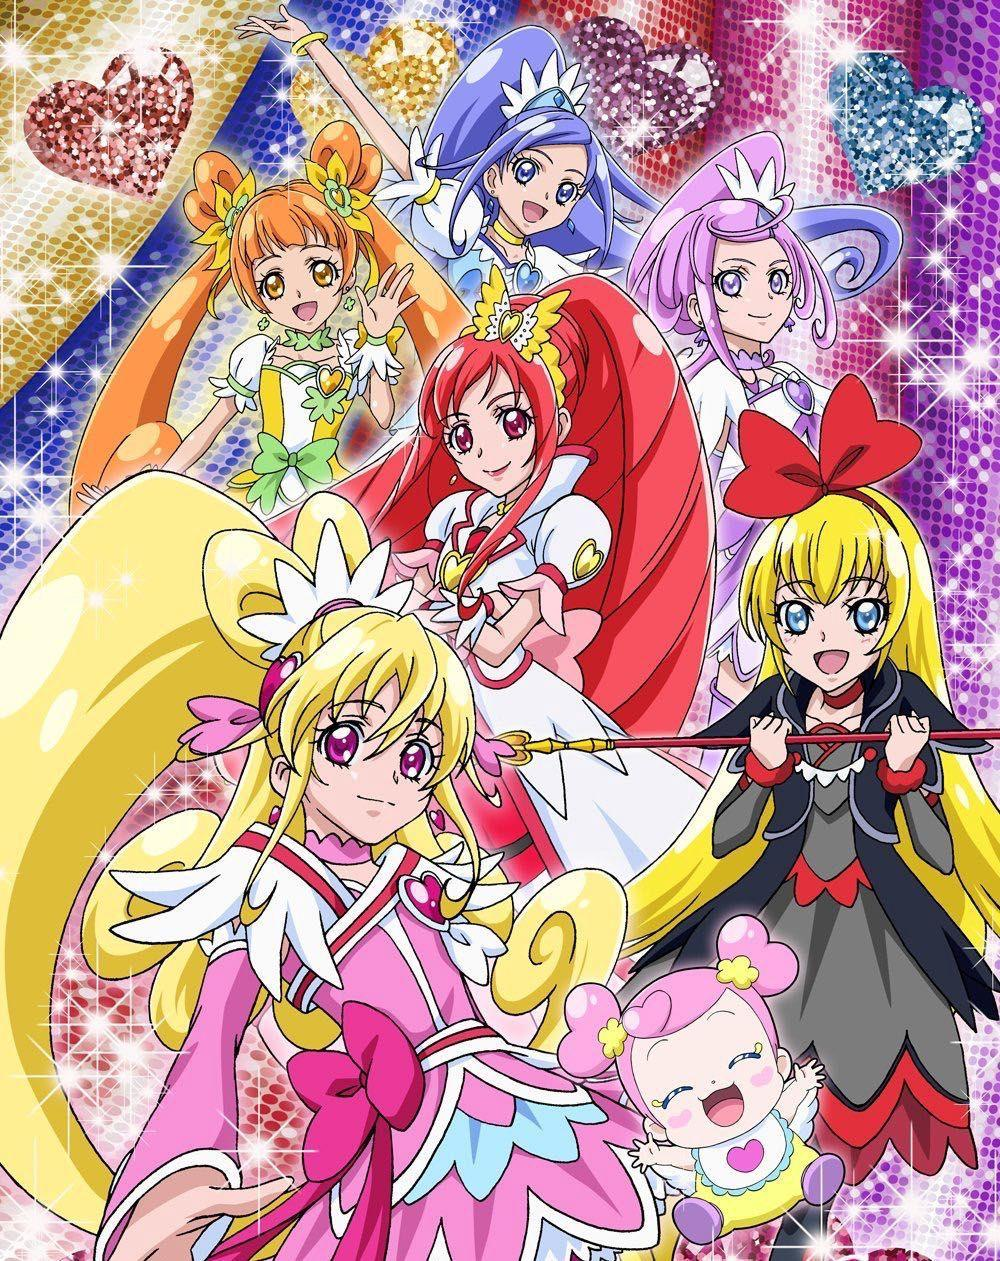 Glitter Force/Precure News! Reacts! And thoughts!